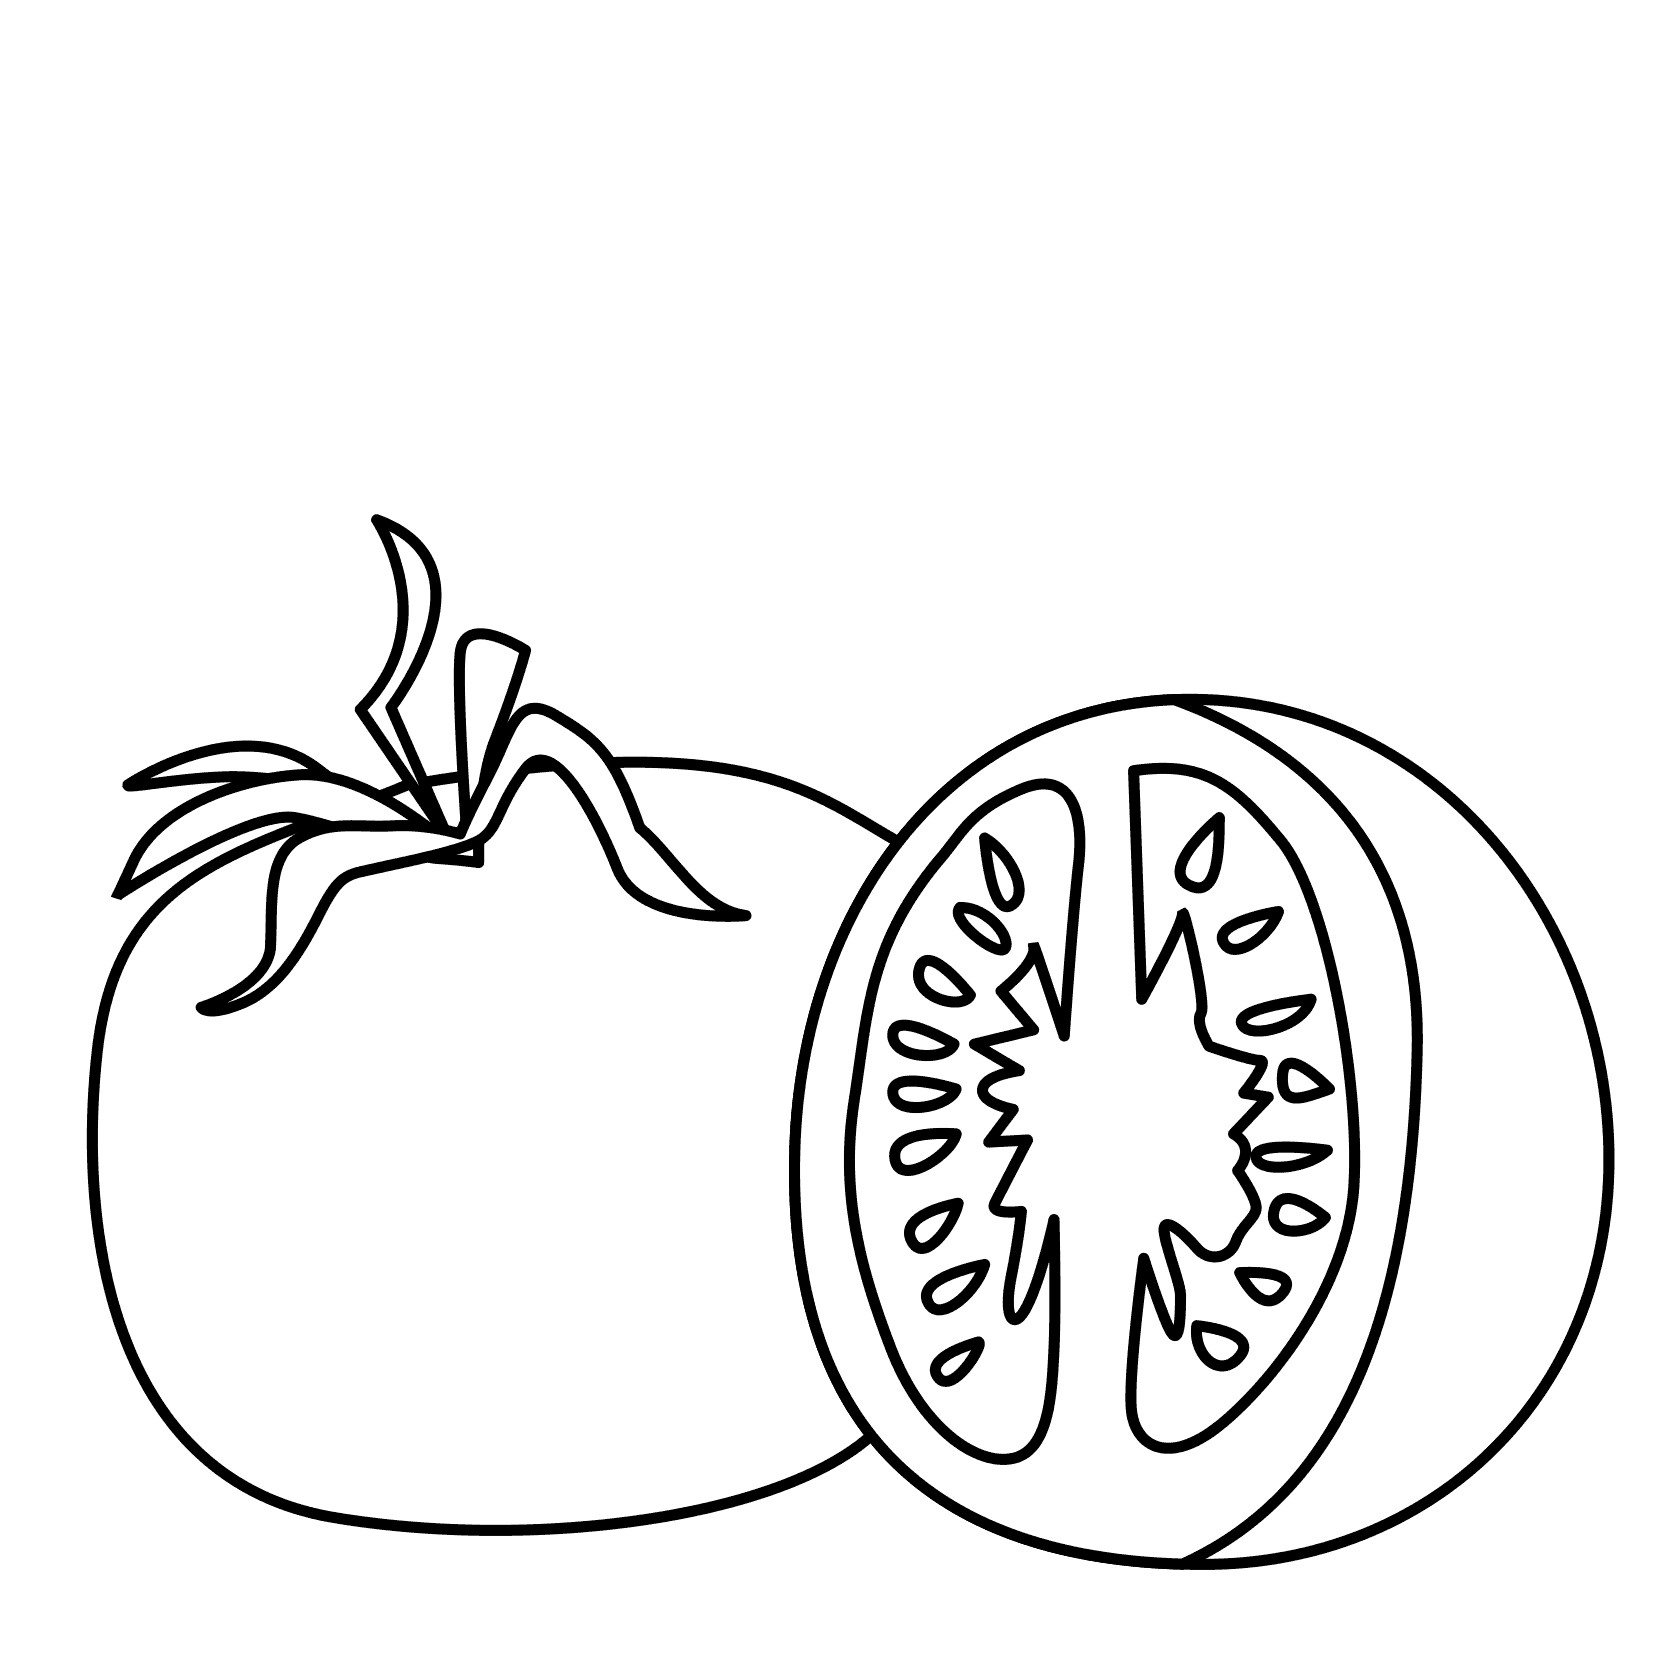 Sliced Tomato Coloring Page